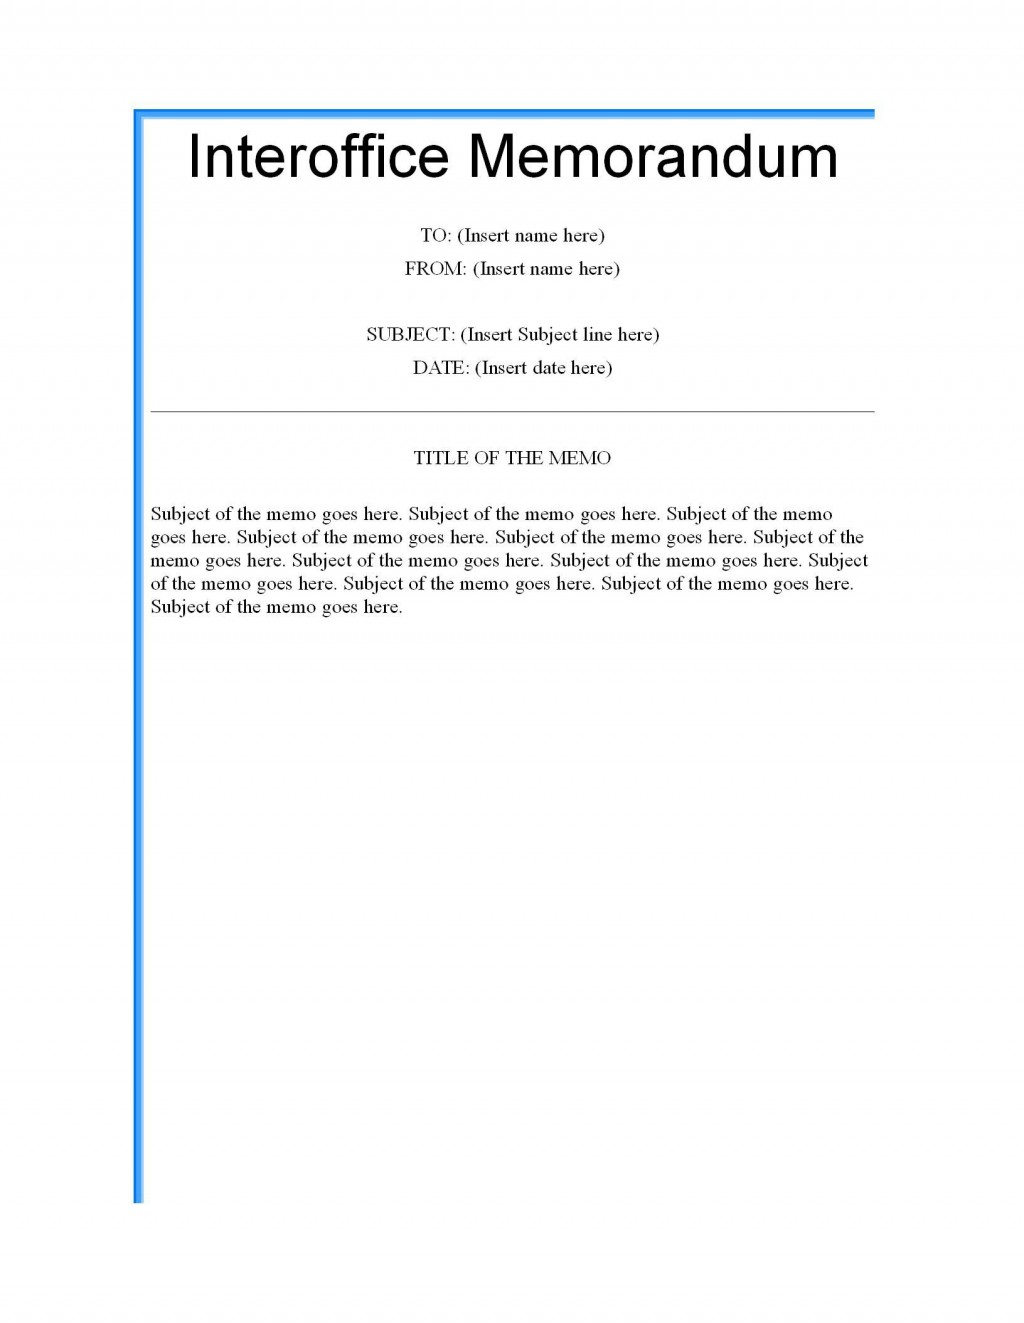 003 Formidable Microsoft Word Memo Template Highest Clarity  Professional 2010 Free LegalLarge